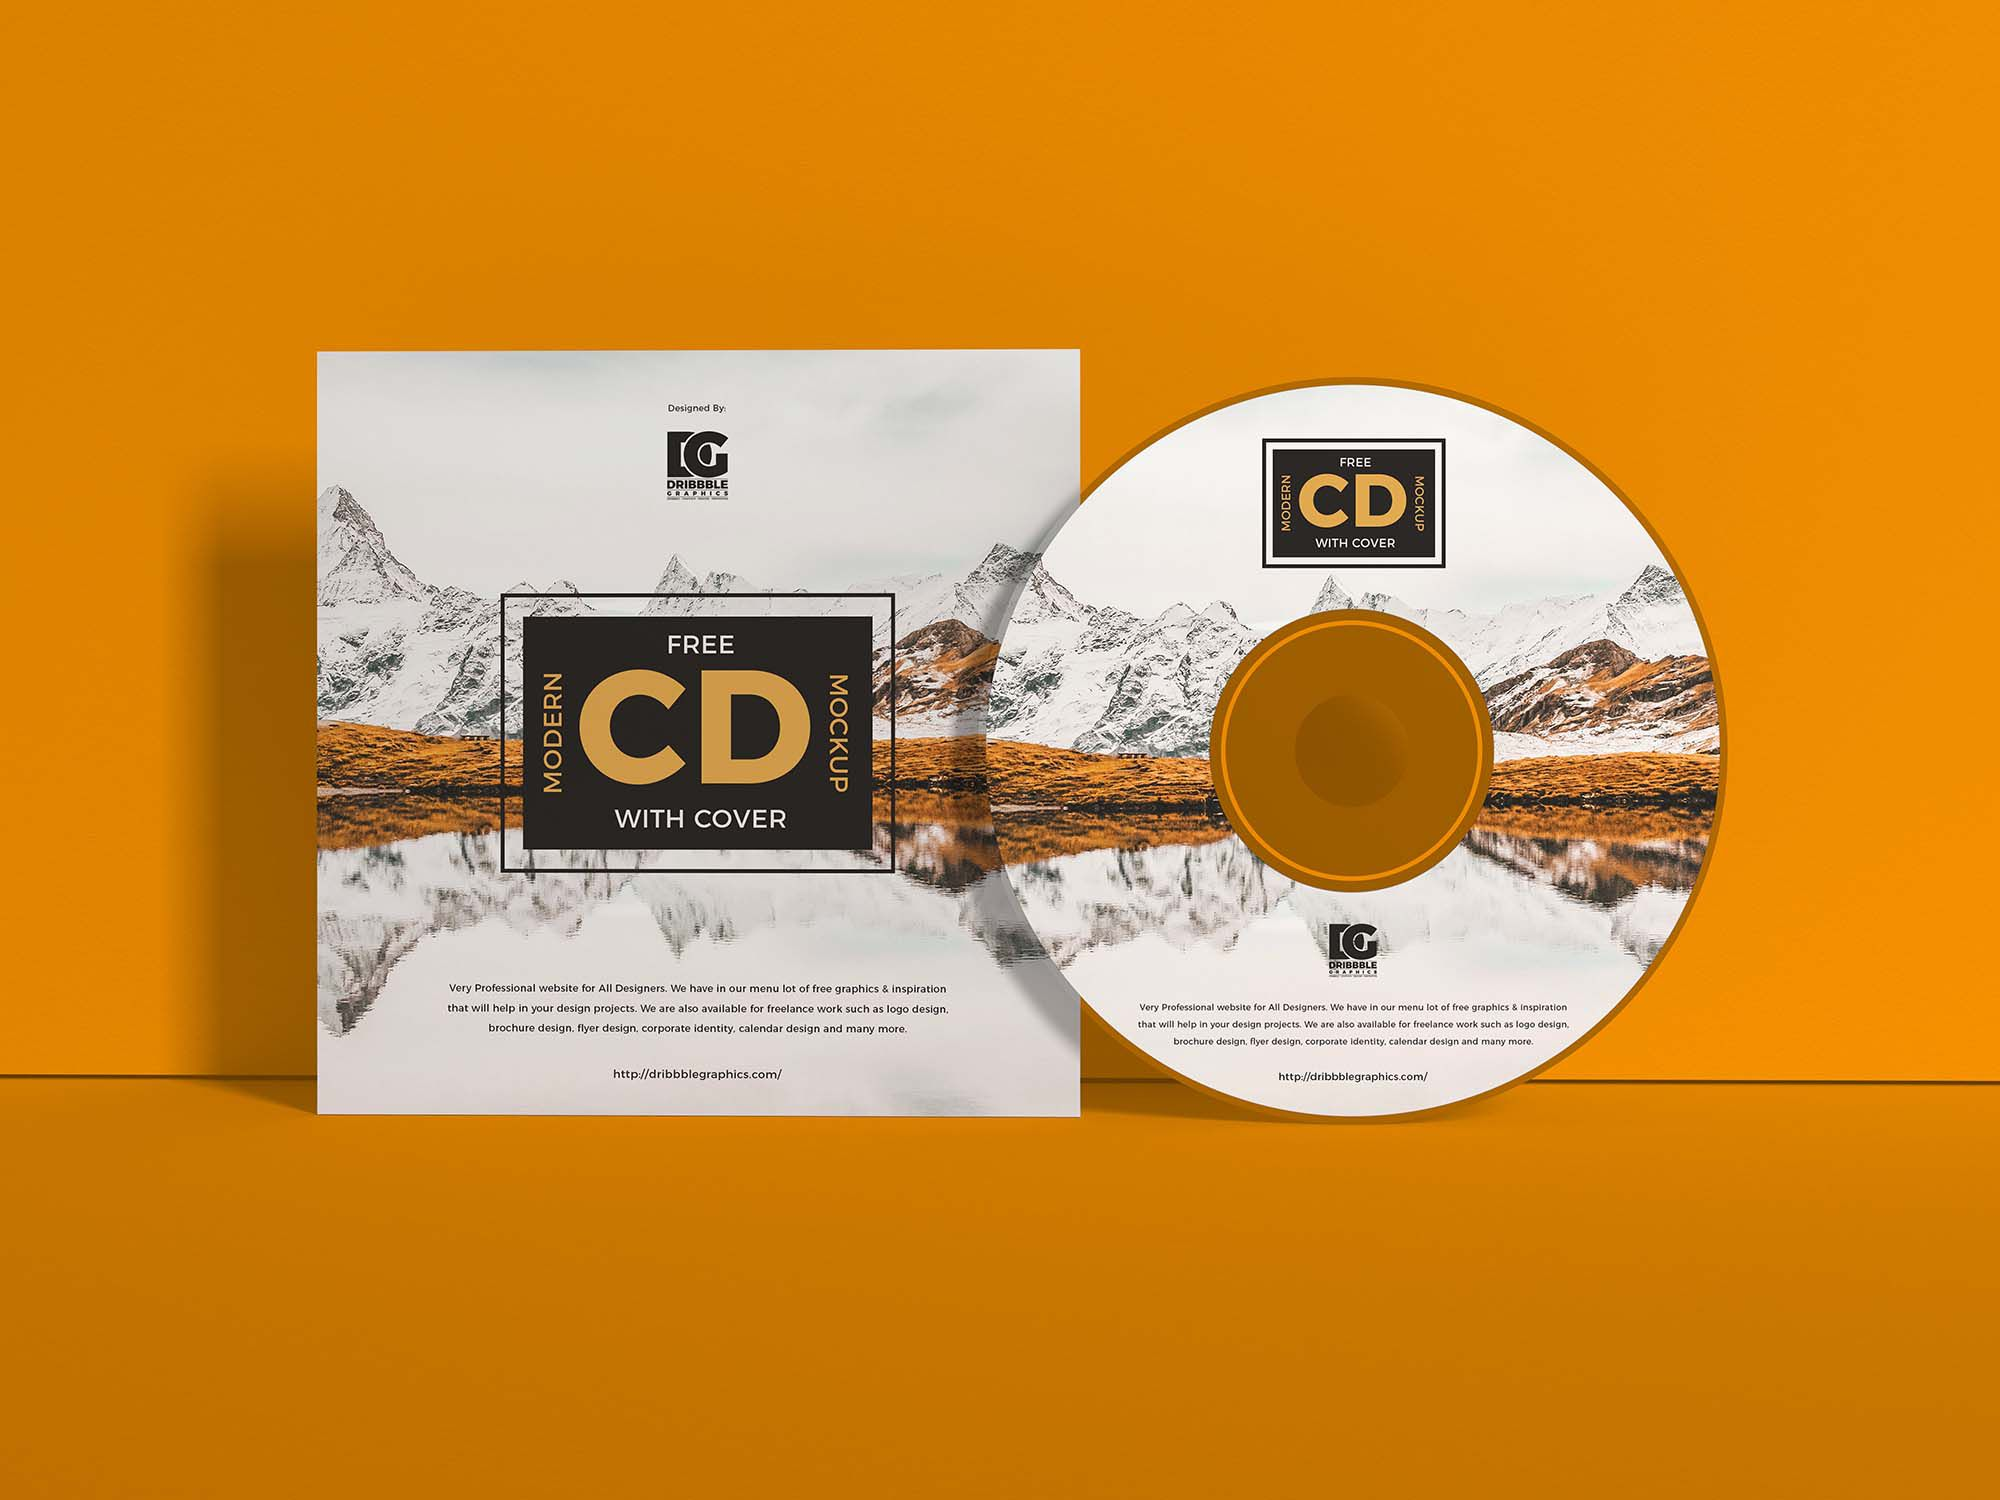 004 Beautiful Free Cd Cover Design Template Photoshop High Definition  Label Psd DownloadFull